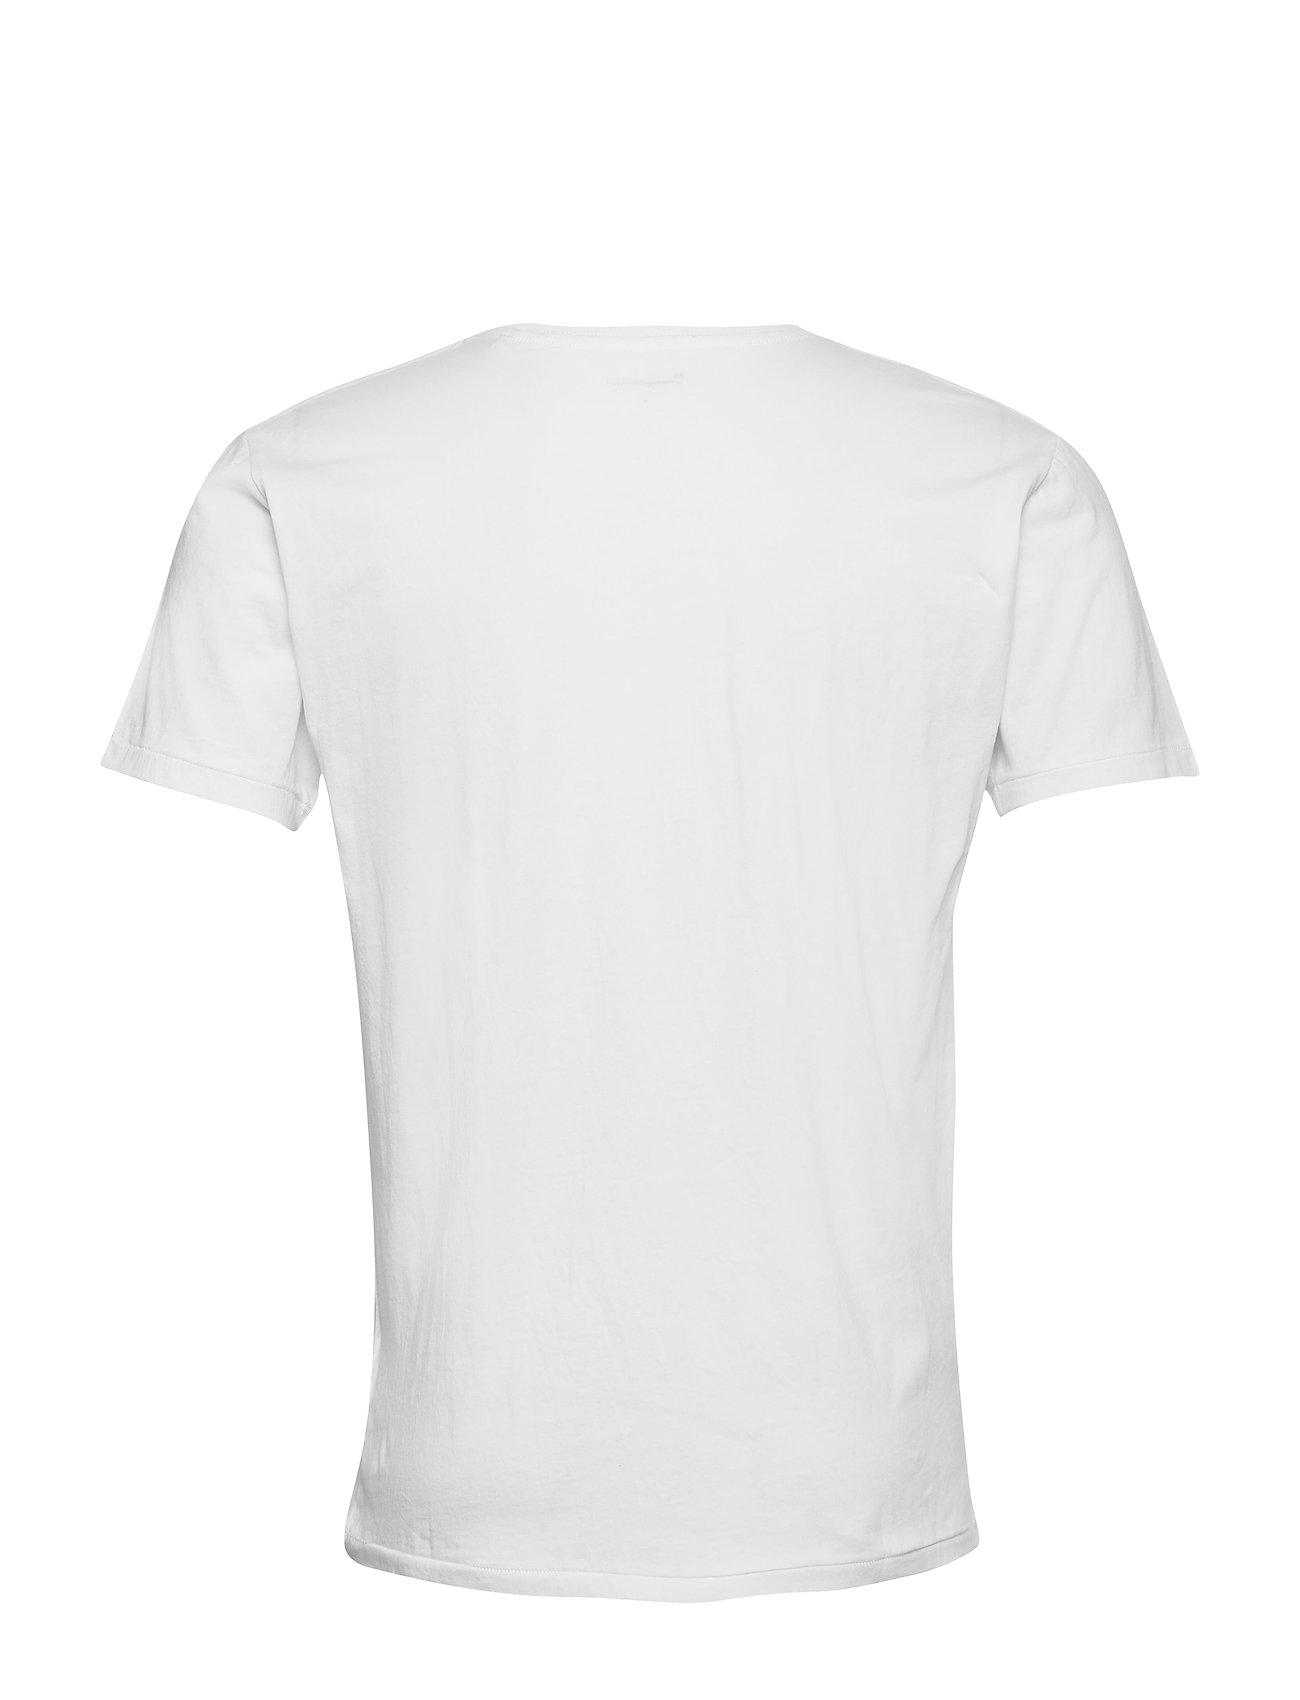 Knowledge Cotton Apparel - ALDER 5 pack basic tee - flat packe - basic t-shirts - bright white - 11